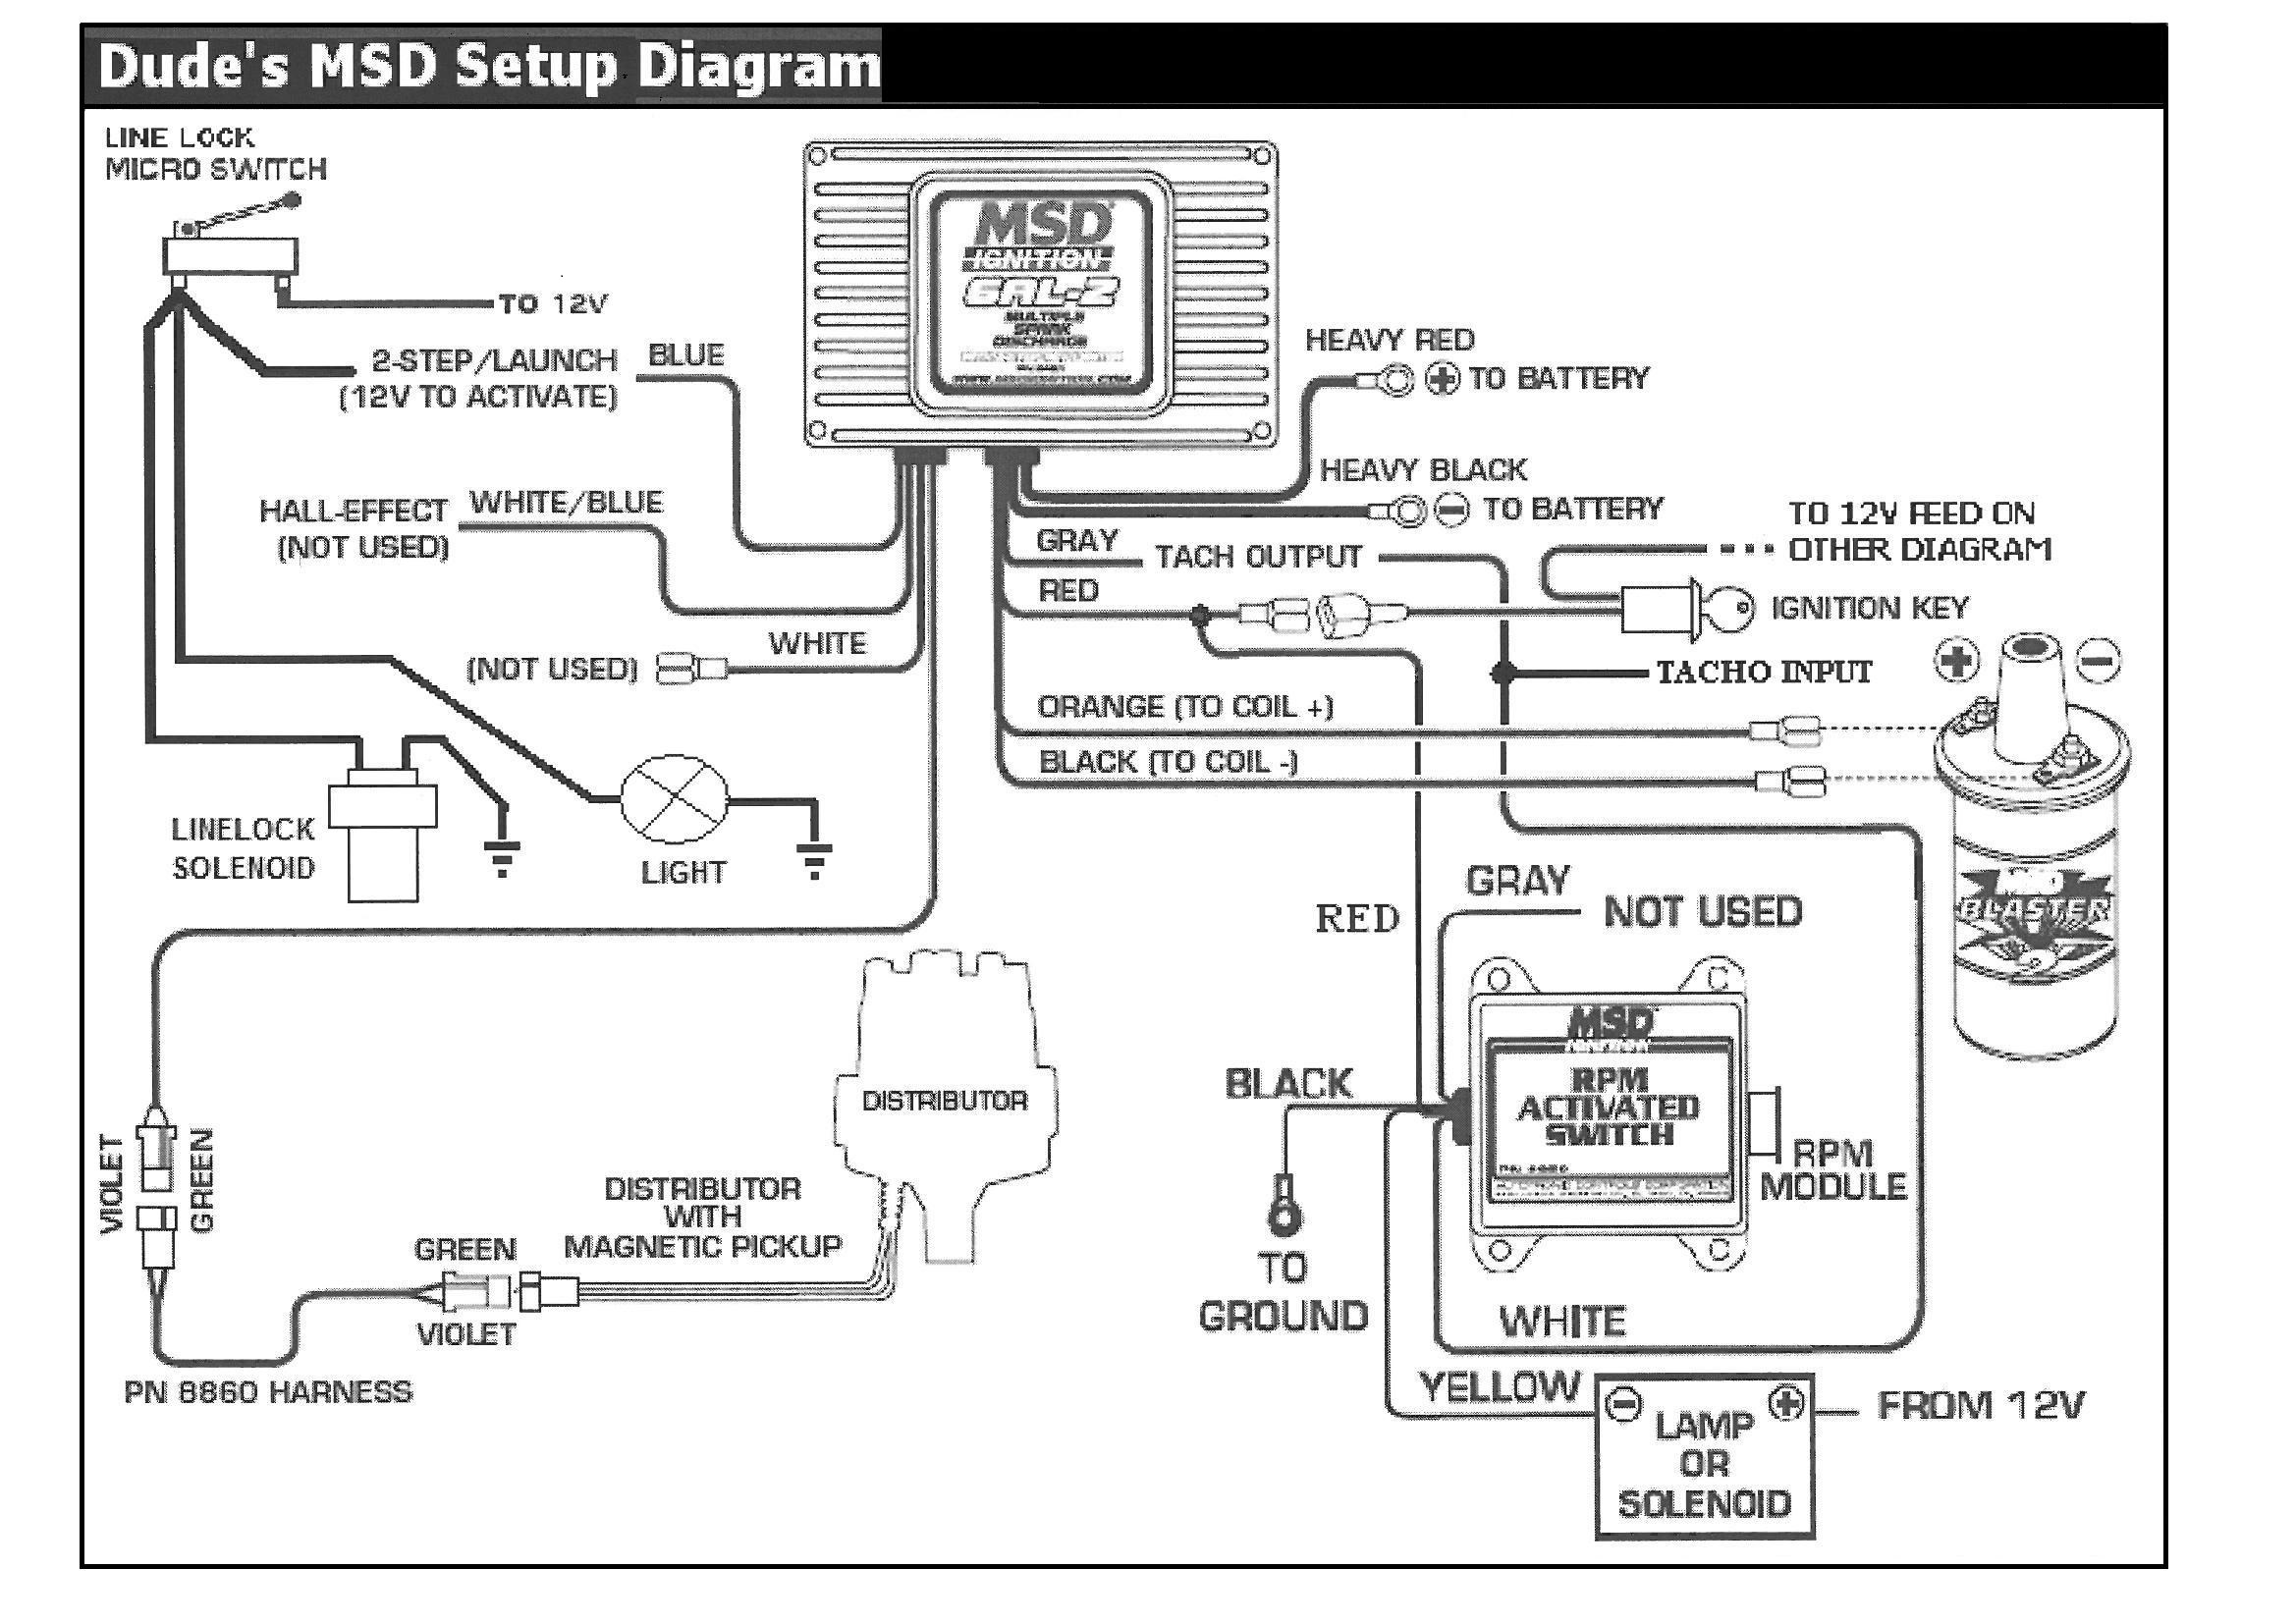 Tel Tach Wiring Diagram Ignition Diagram Wiring Diagram